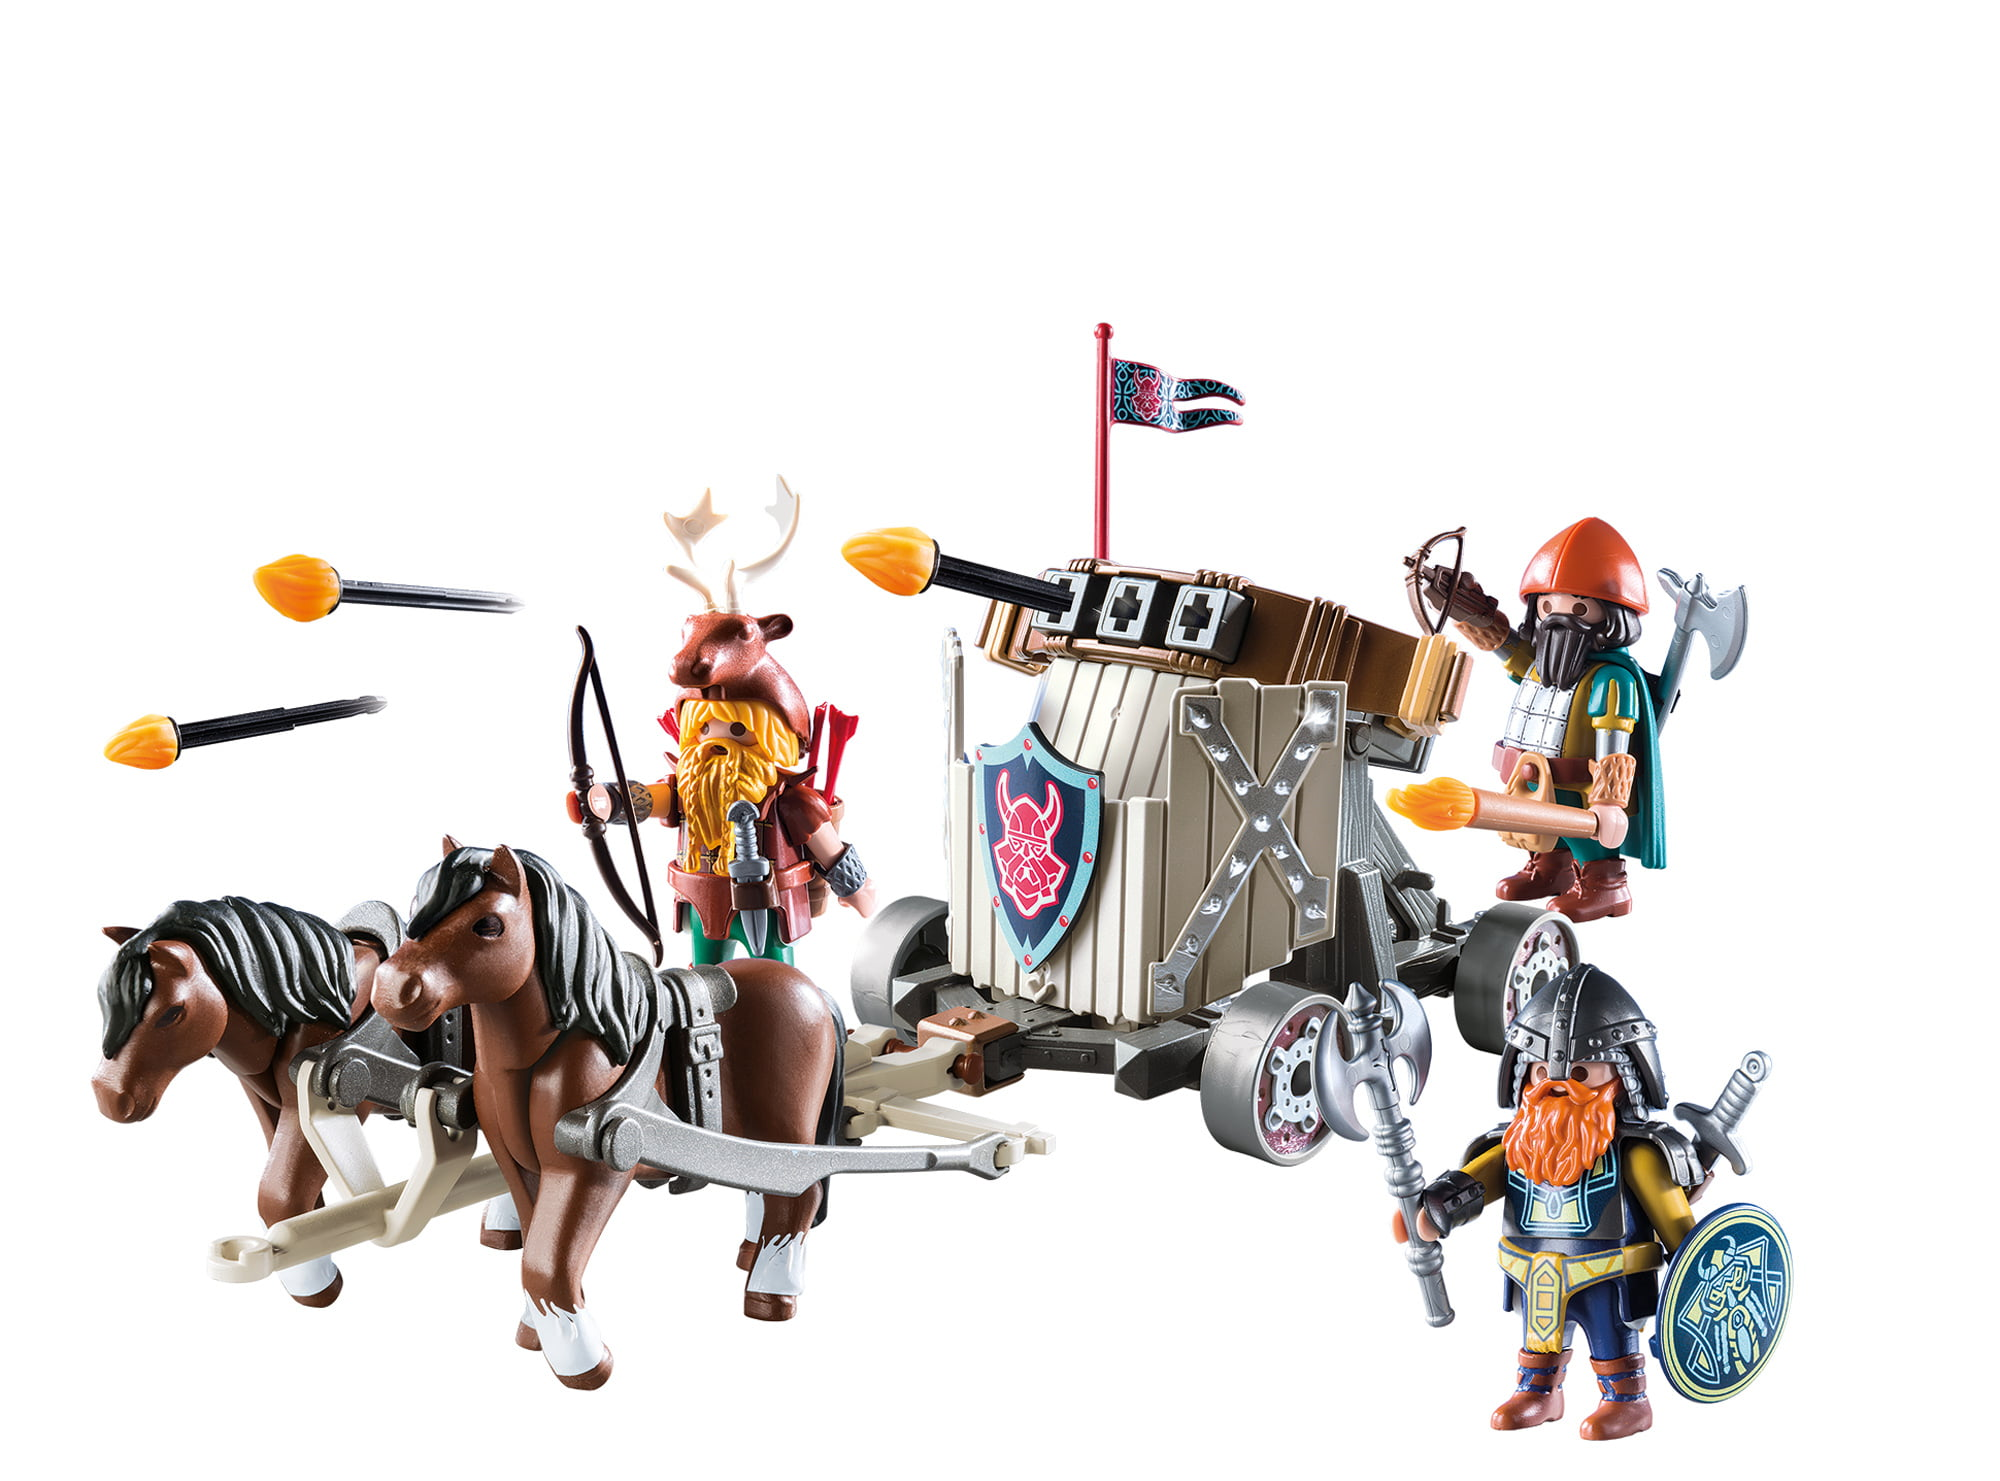 Mint New! Playmobil Horse with Harnesses for Car or Carriage